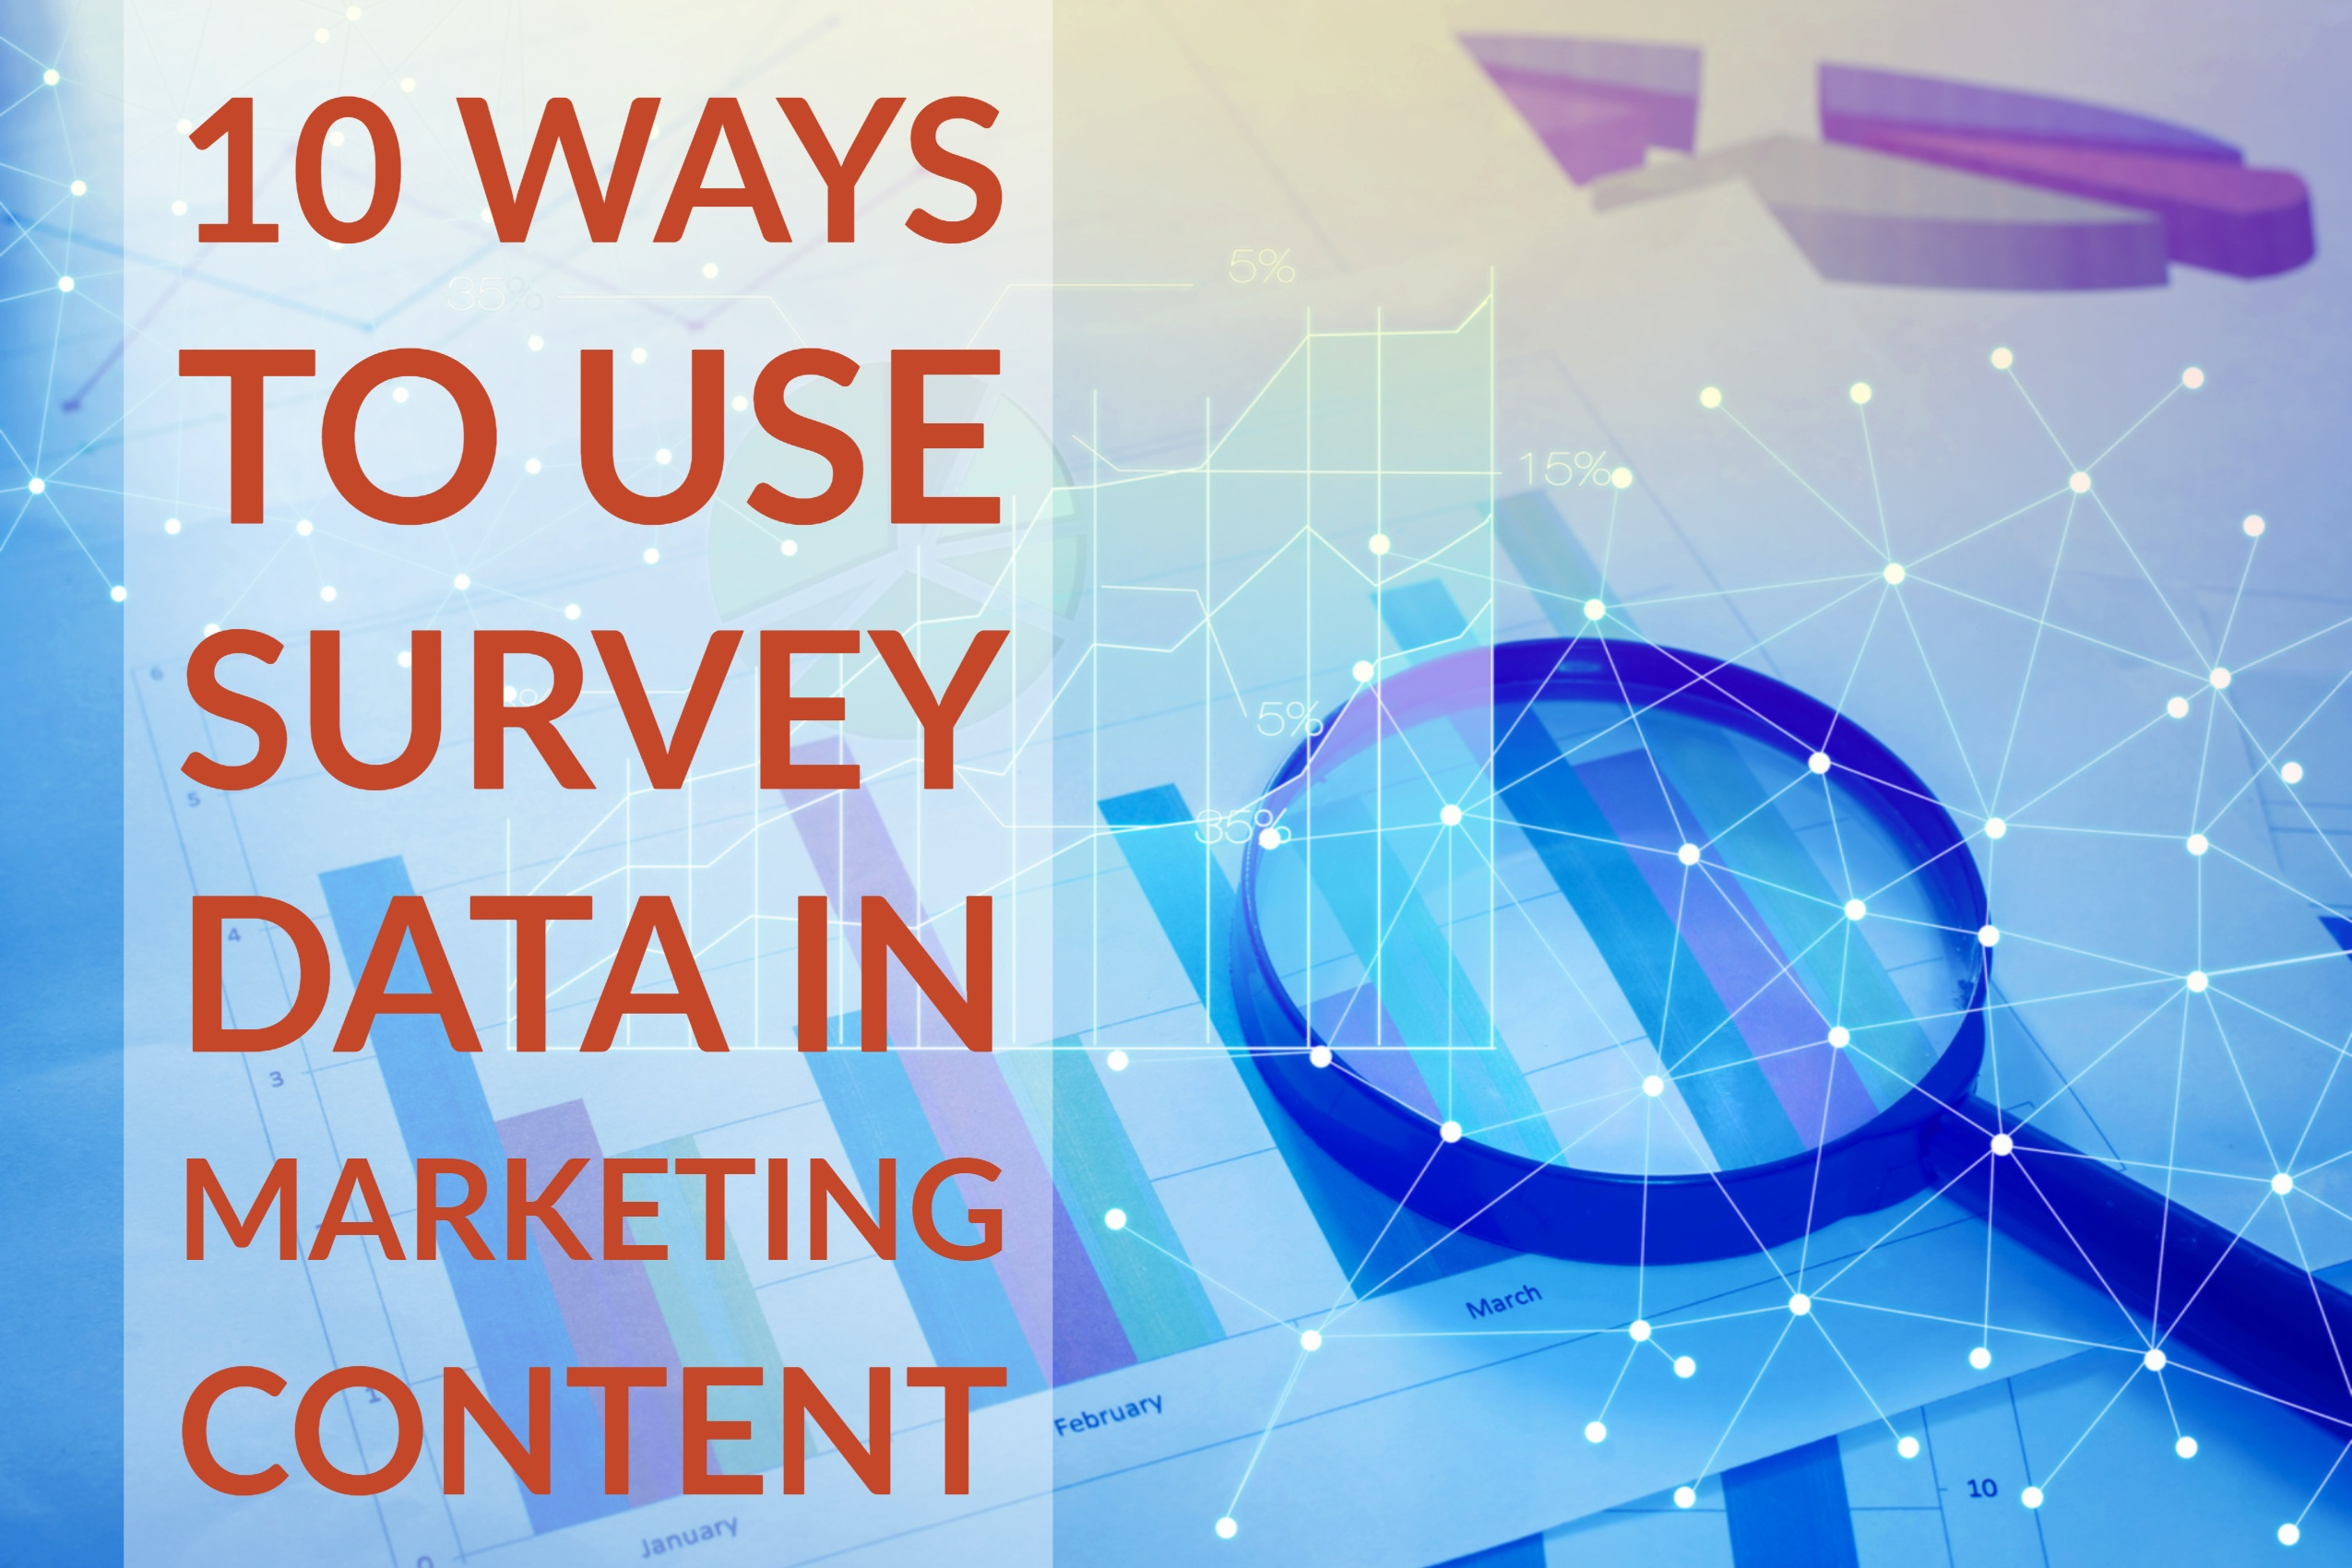 10 Ways To Use Survey Data In Marketing Content